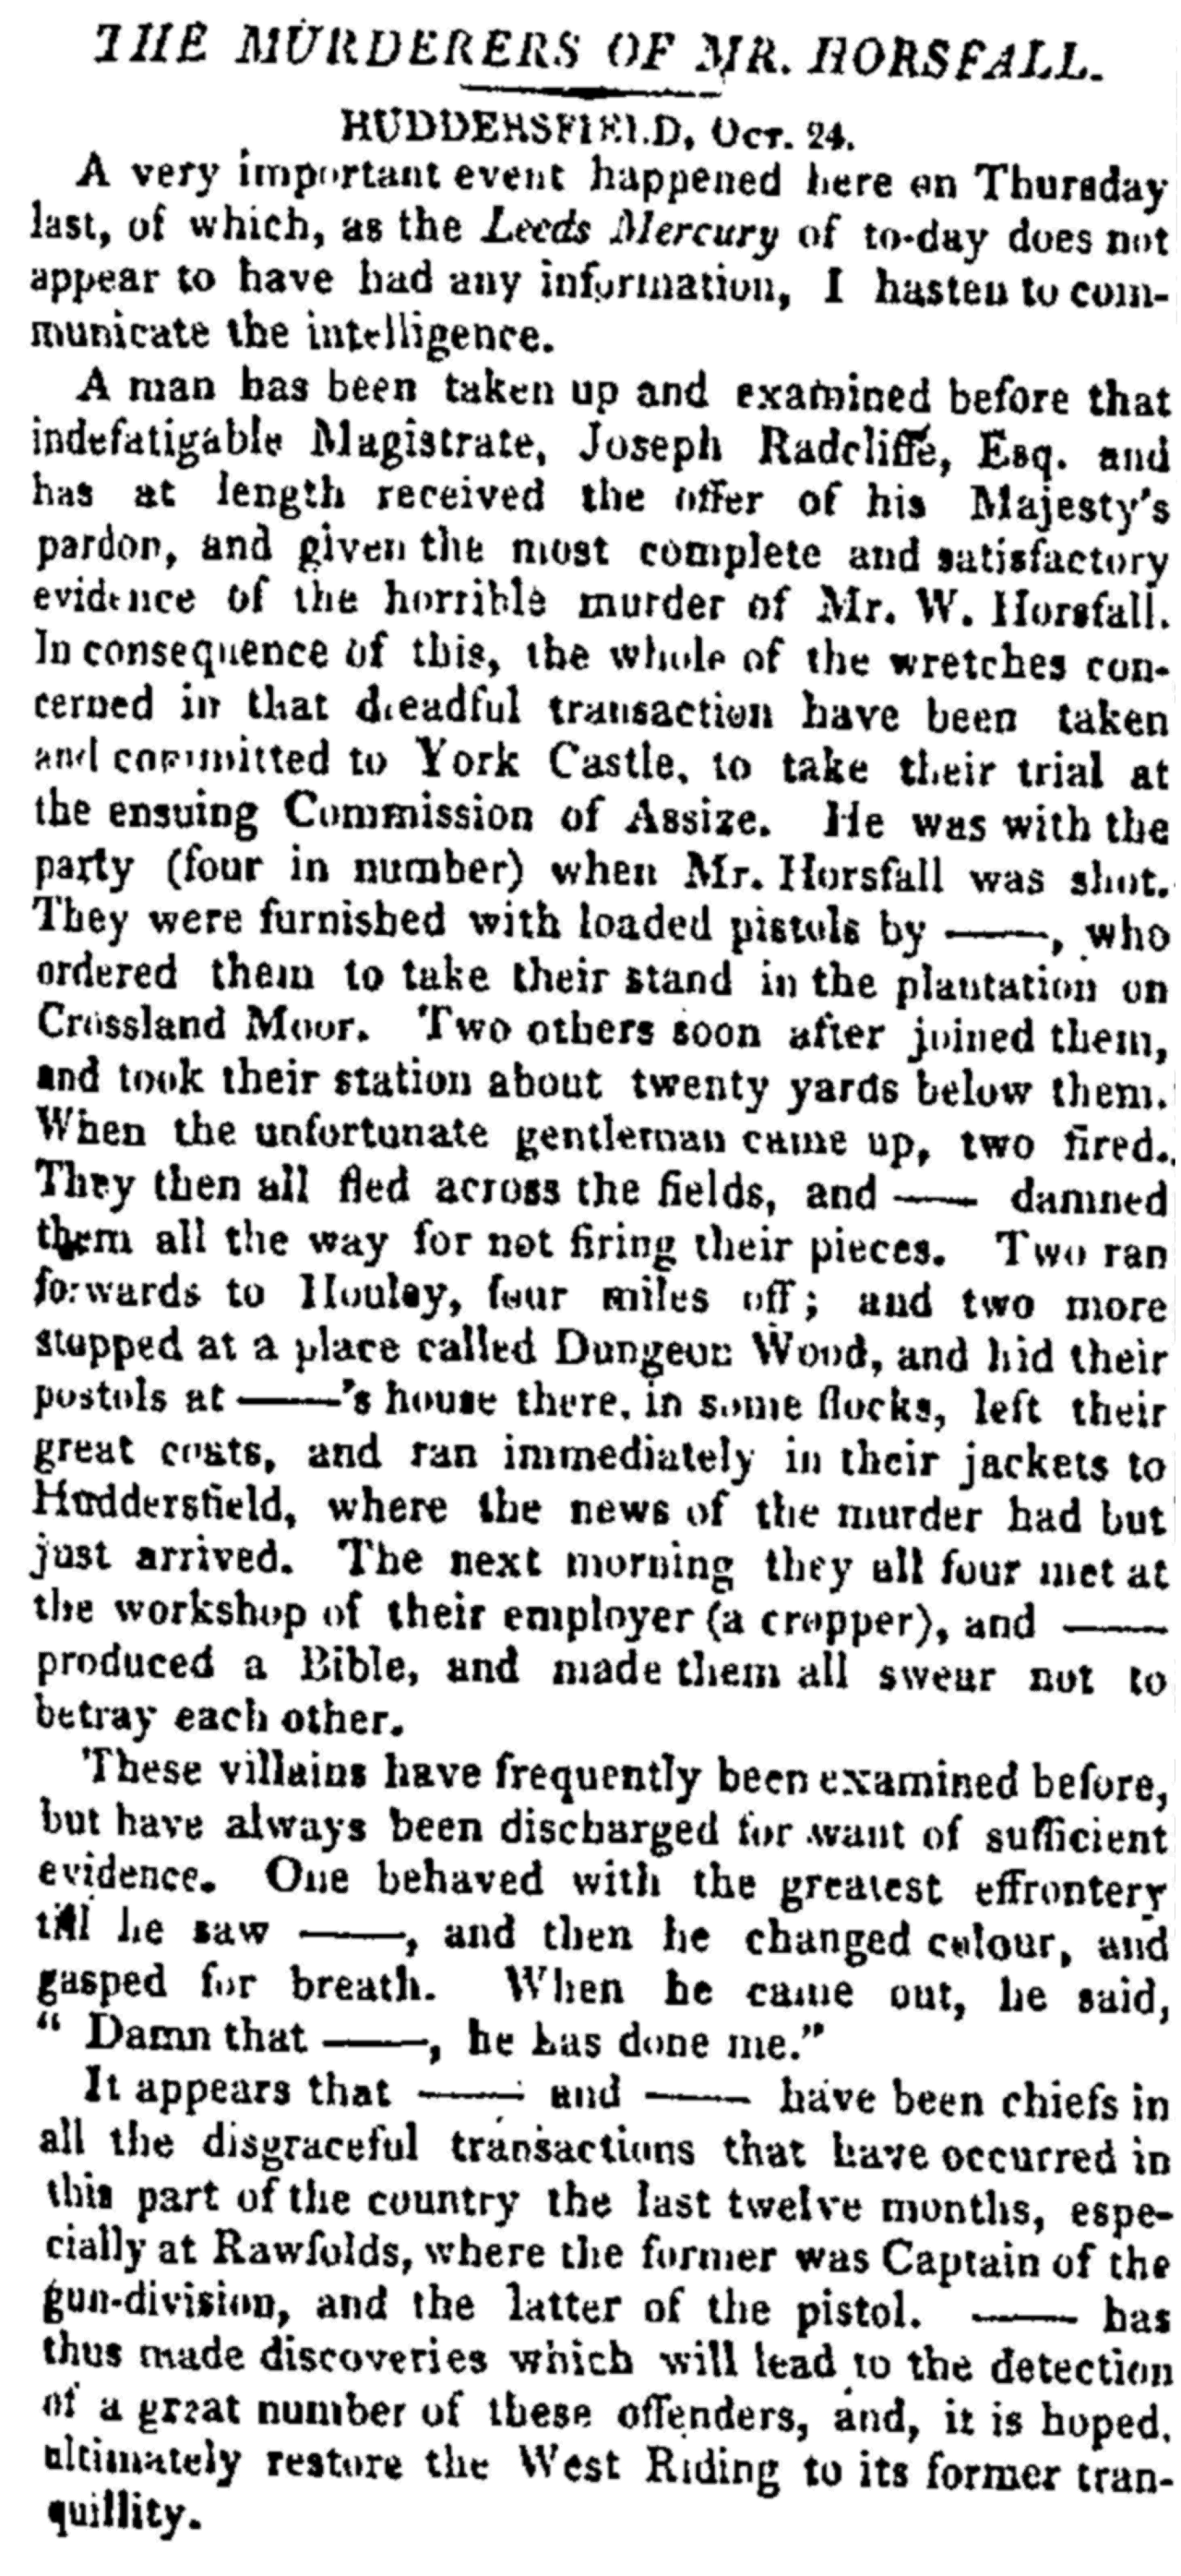 The Times (30.Oct.1812) - The Murderers of Mr. Horsfall